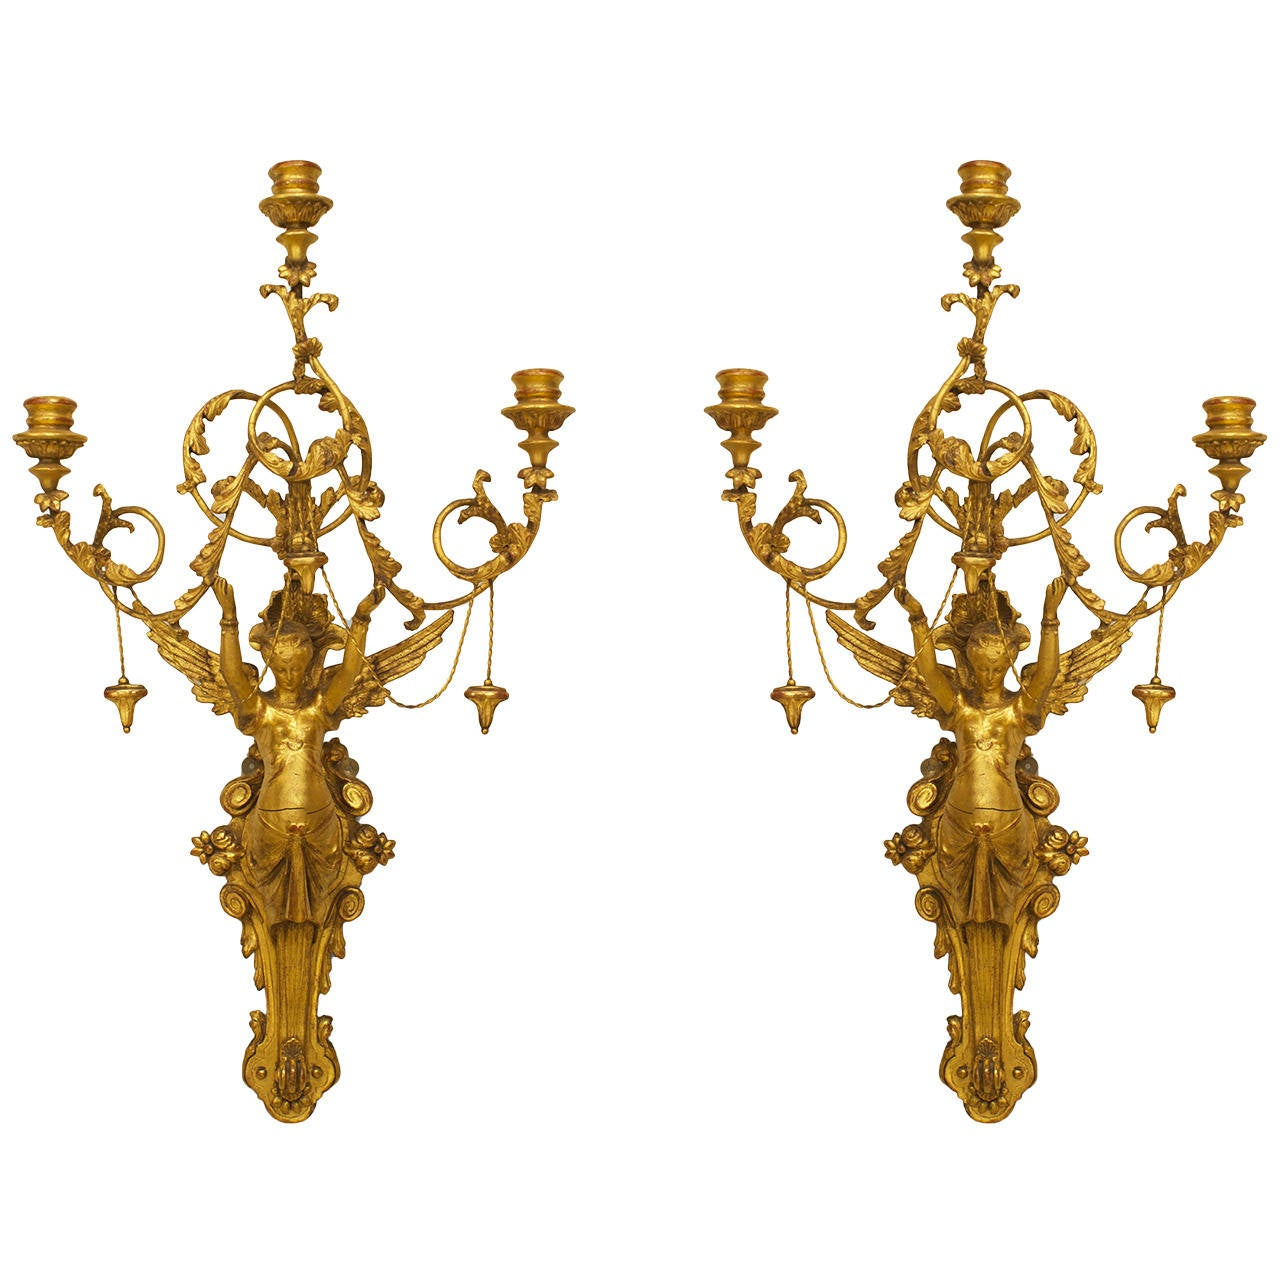 Pair of Early 19th c. Italian Neoclassical Gilt Figural Sconces